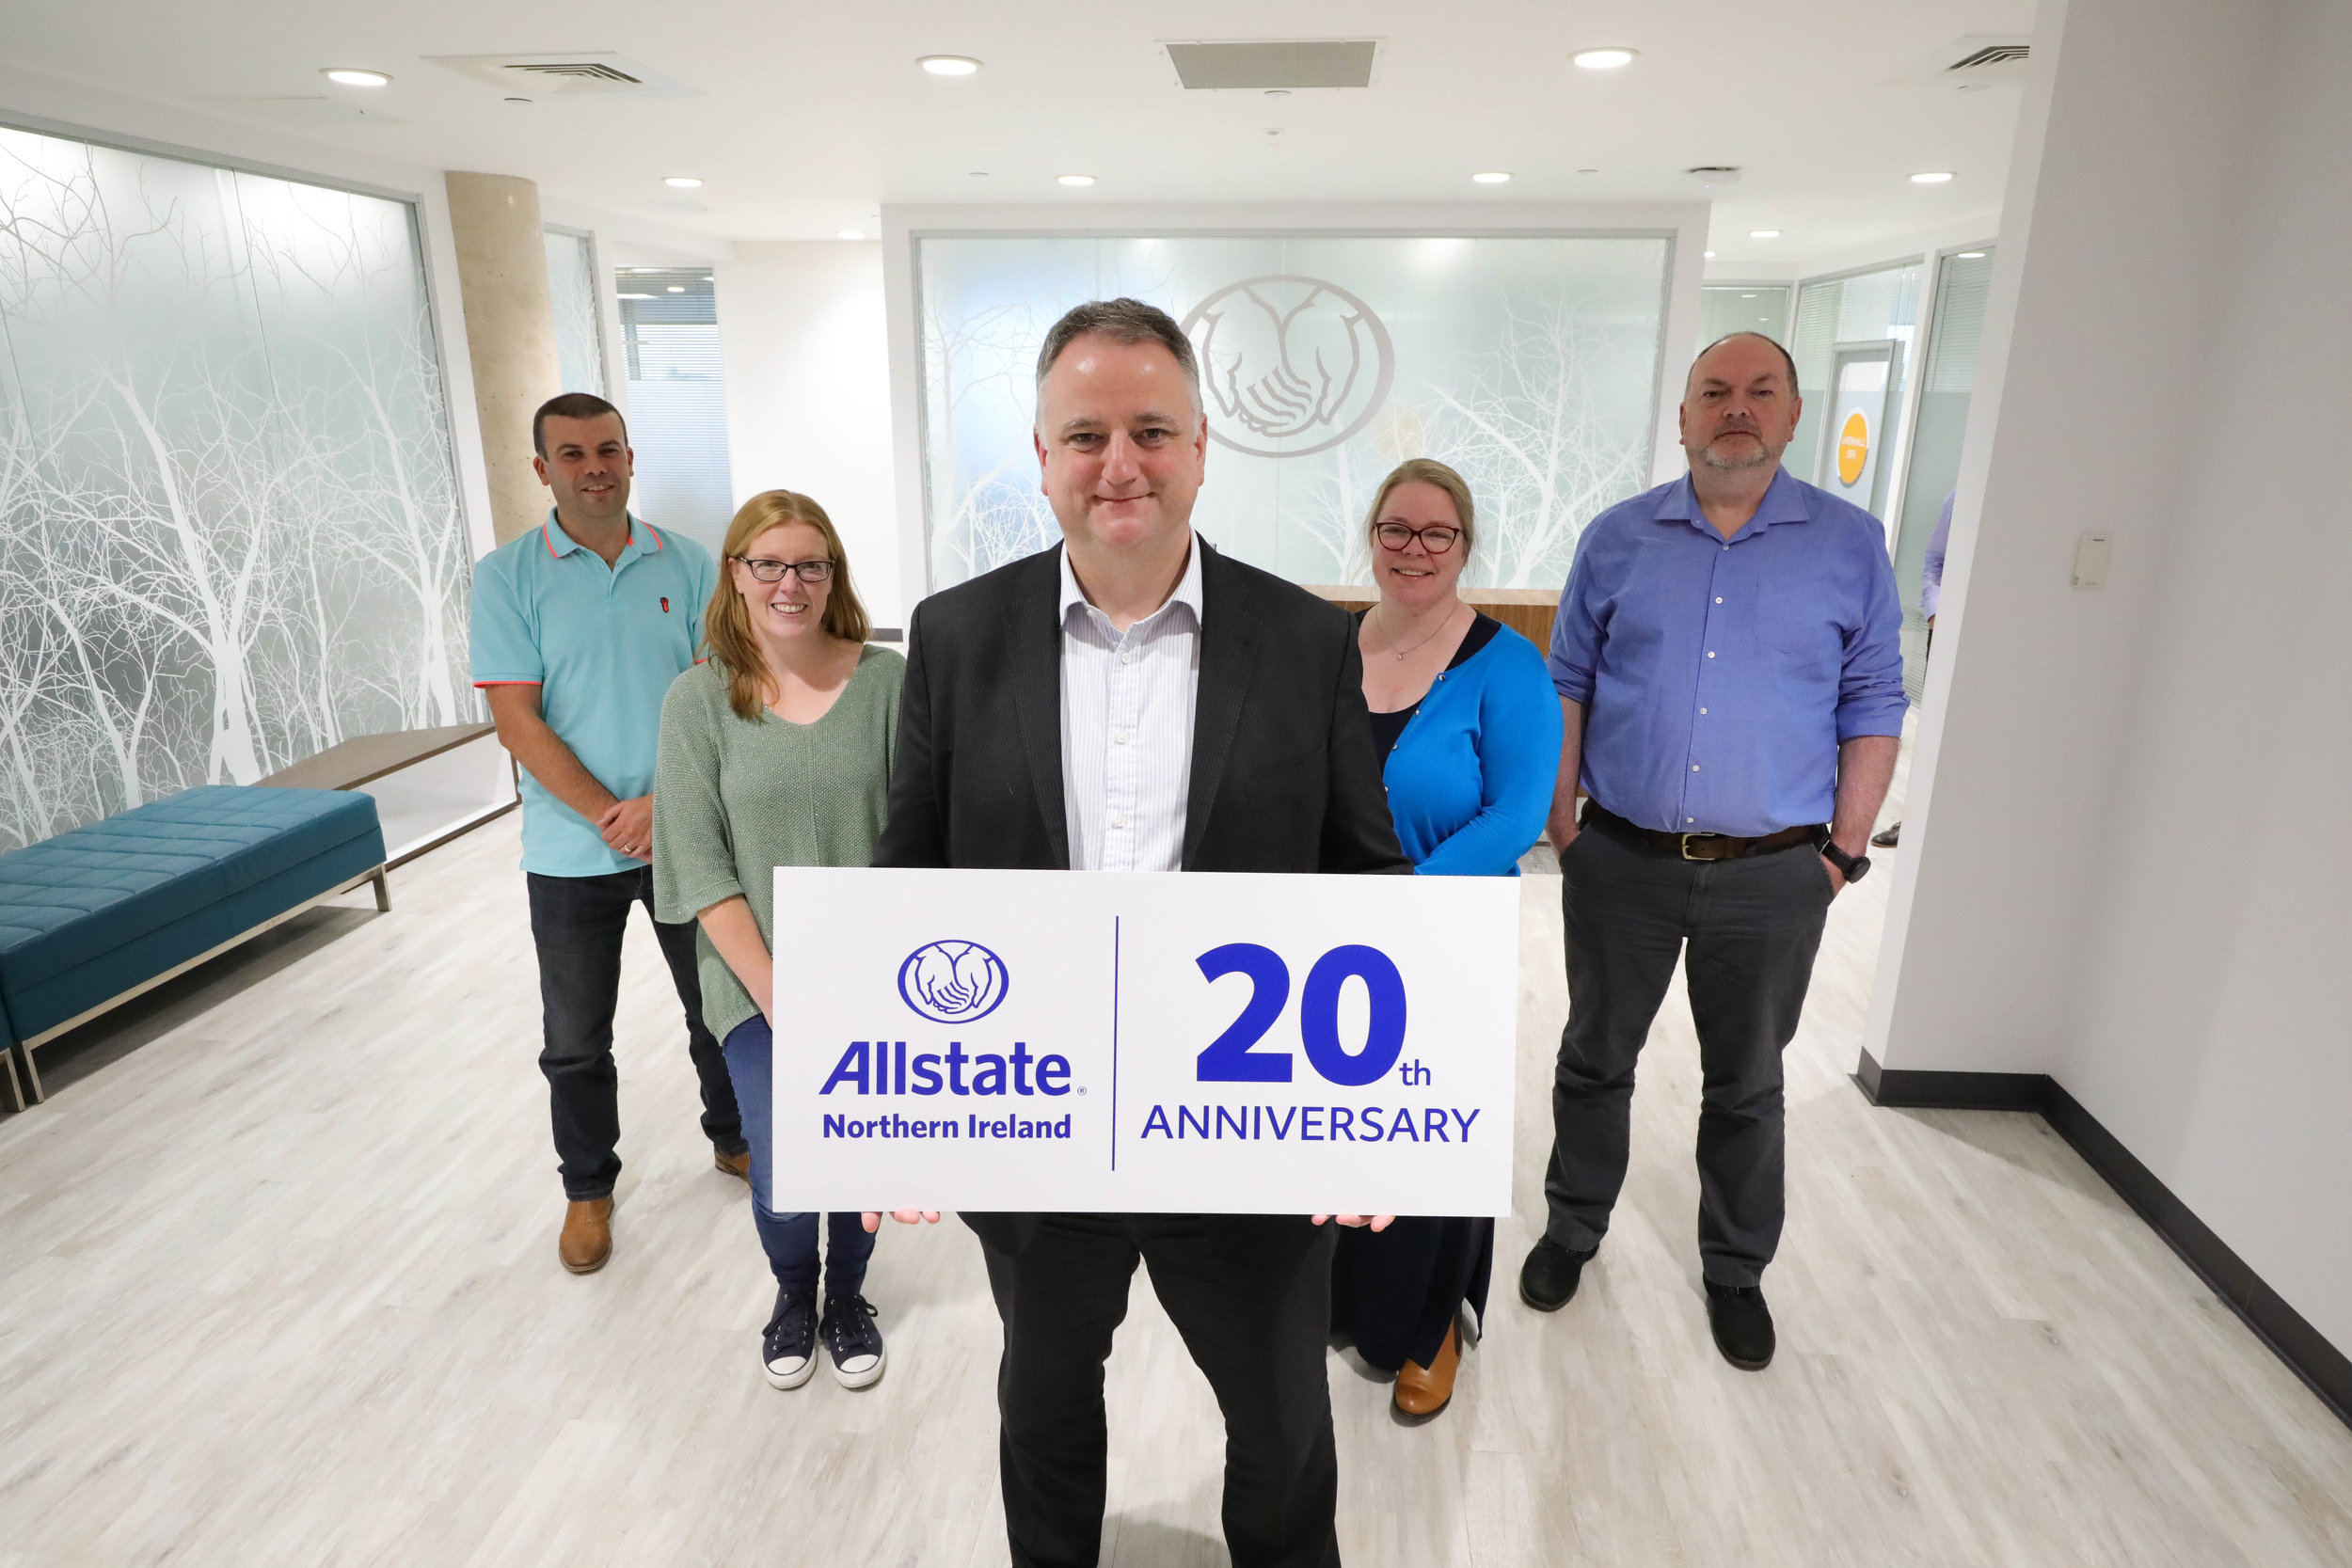 John Healy, Vice President and Managing Director of Allstate Northern Ireland celebrating the 20th anniversary with staff who have twenty years of continuous service. L-R Mark Lilburn, Pauline Lilburn, Jayne Workman, Paddy Warnock with Vice President and Managing Director John Healy centre.